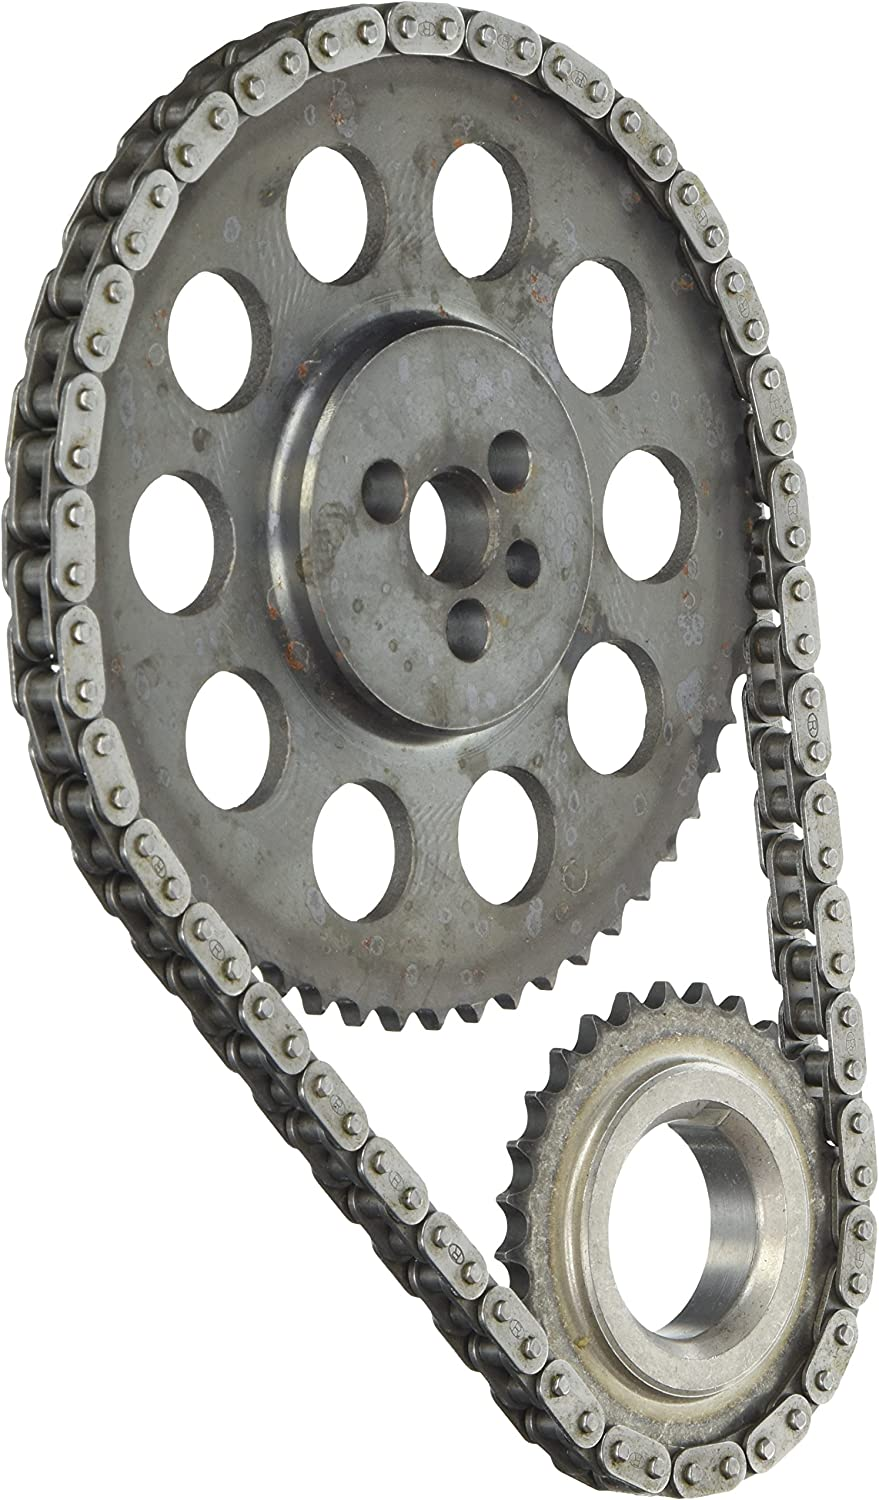 Melling 3SRH60 Stock Replacement Timing Chain